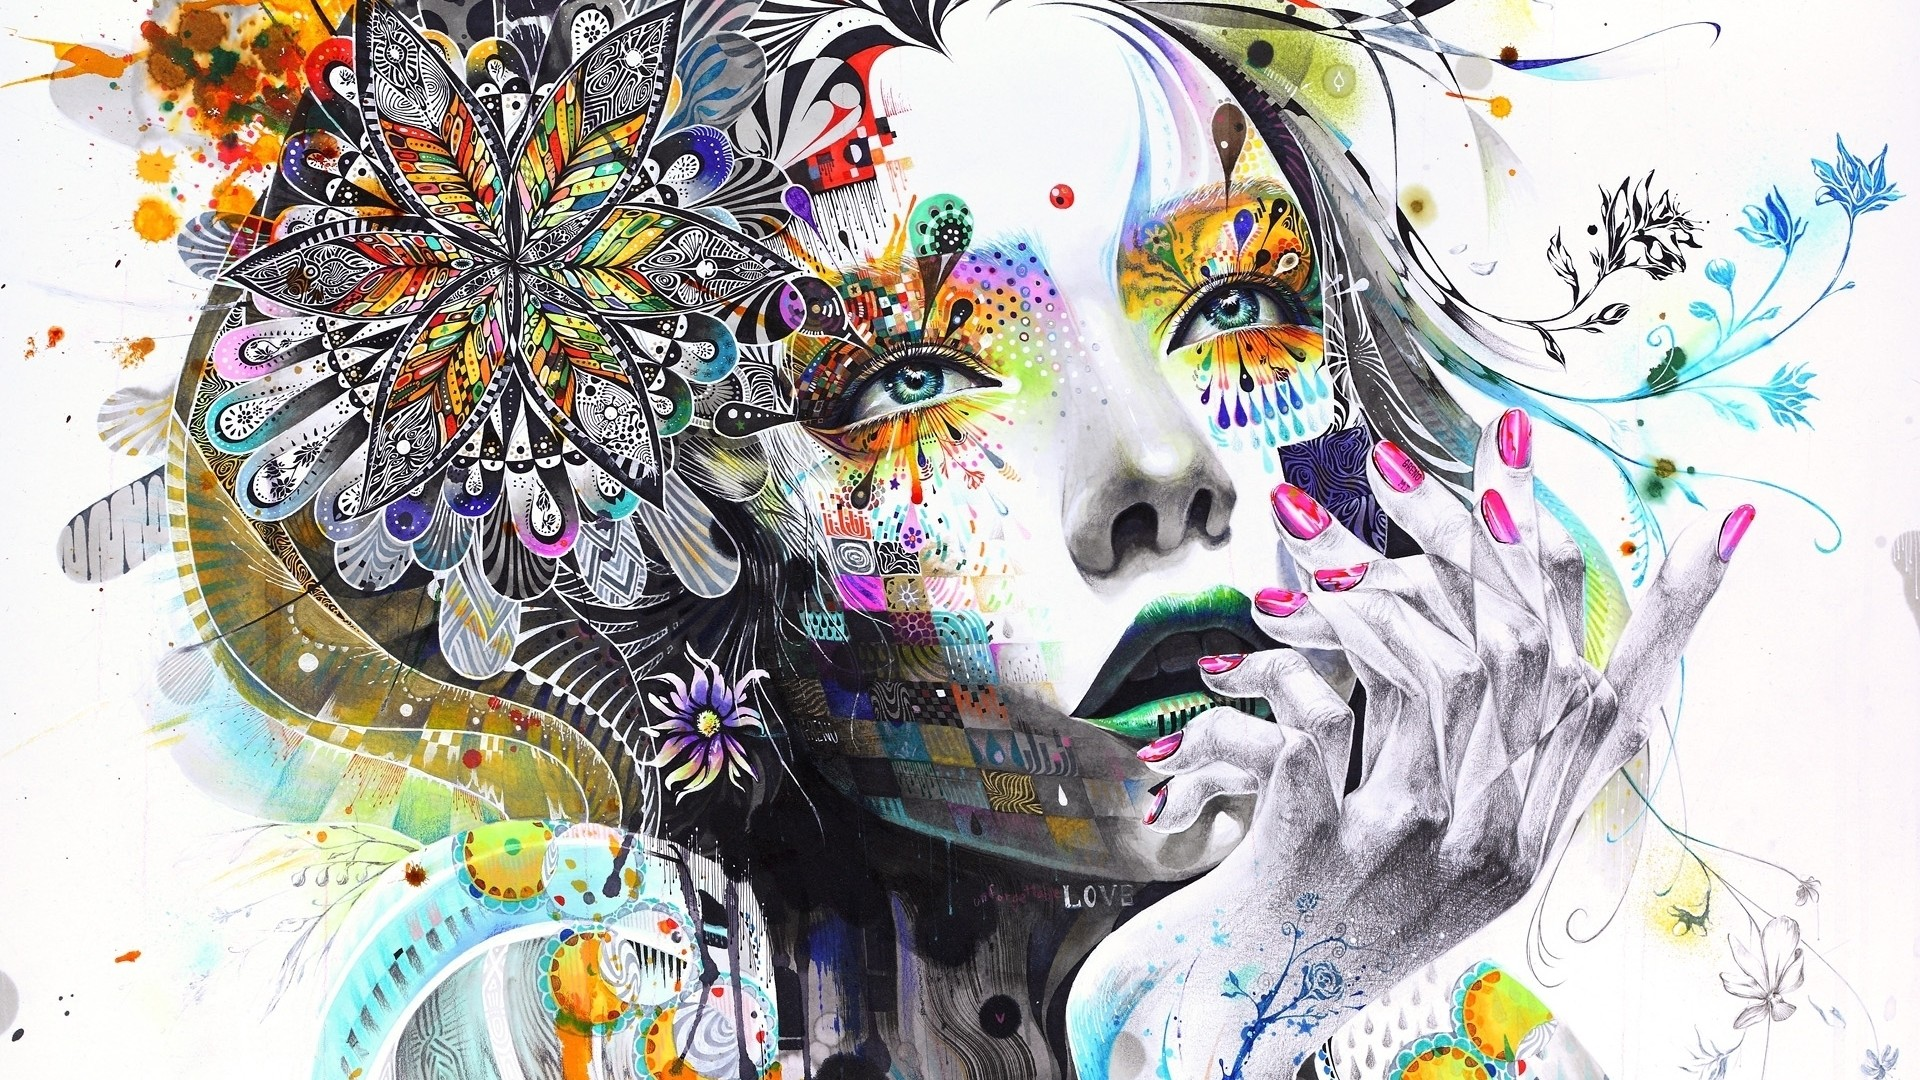 Res: 1920x1080, girl-painting-abstract-art-img.jpg